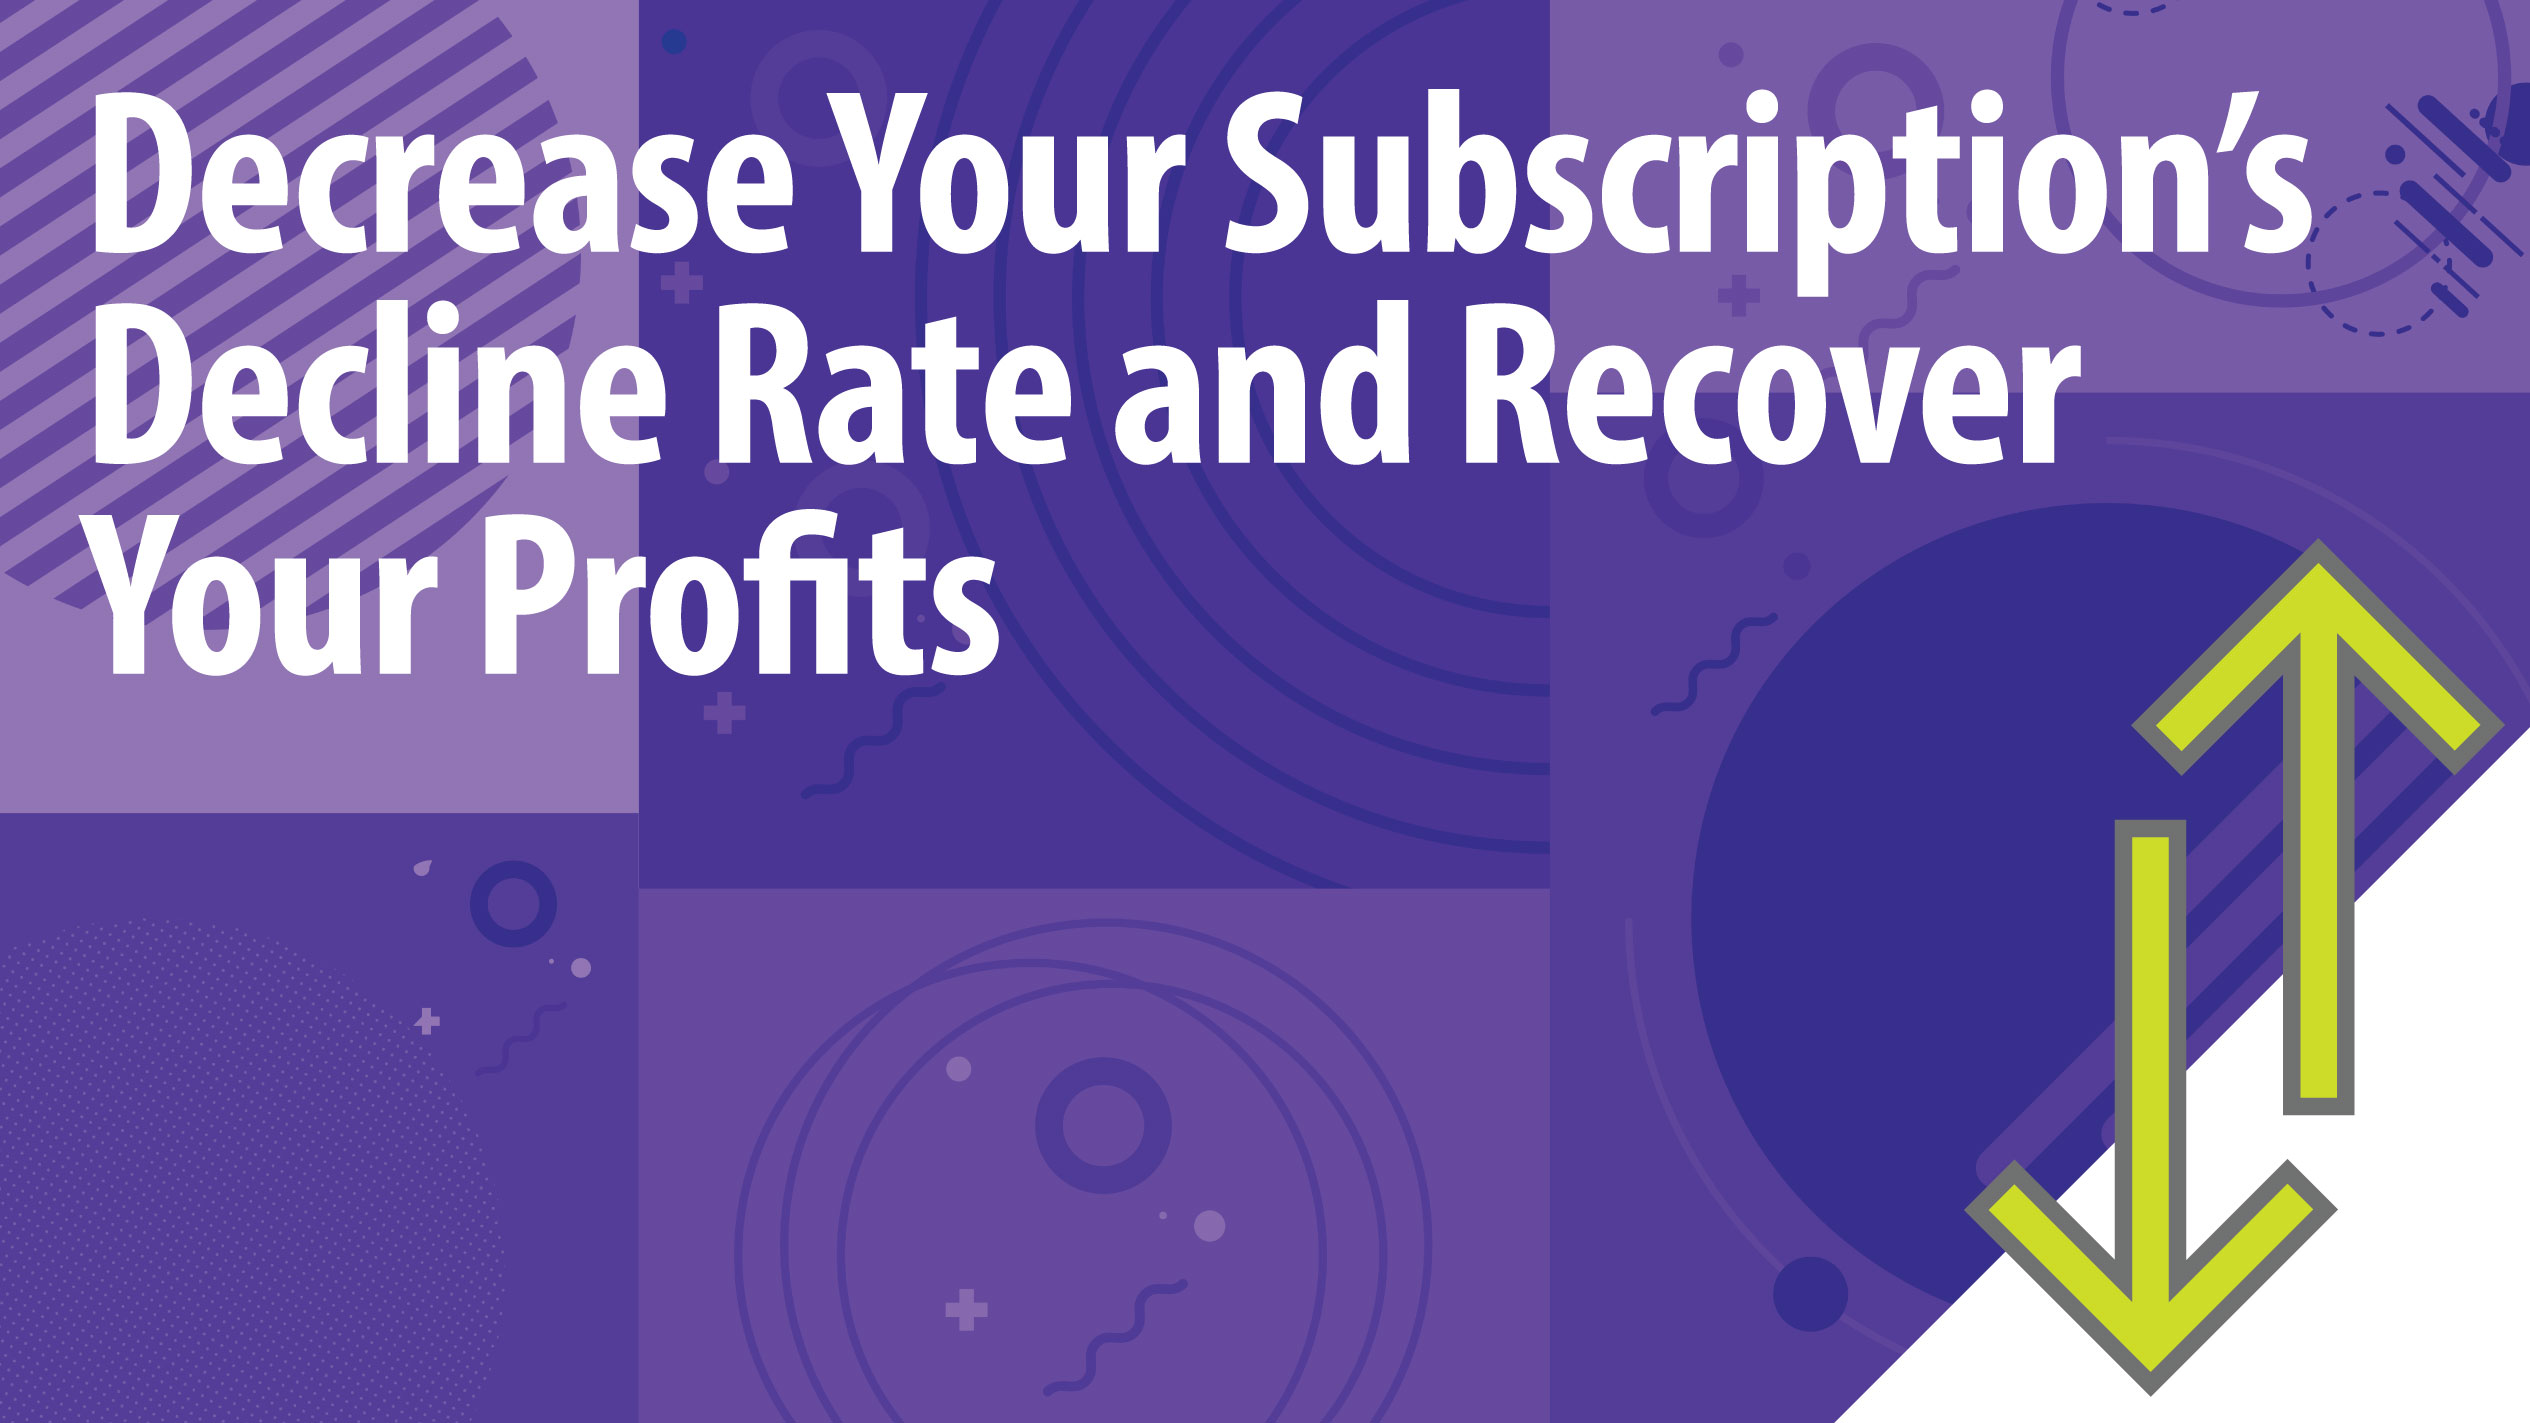 Decrease Your Subscription's Decline Rate and Recover Your Profits